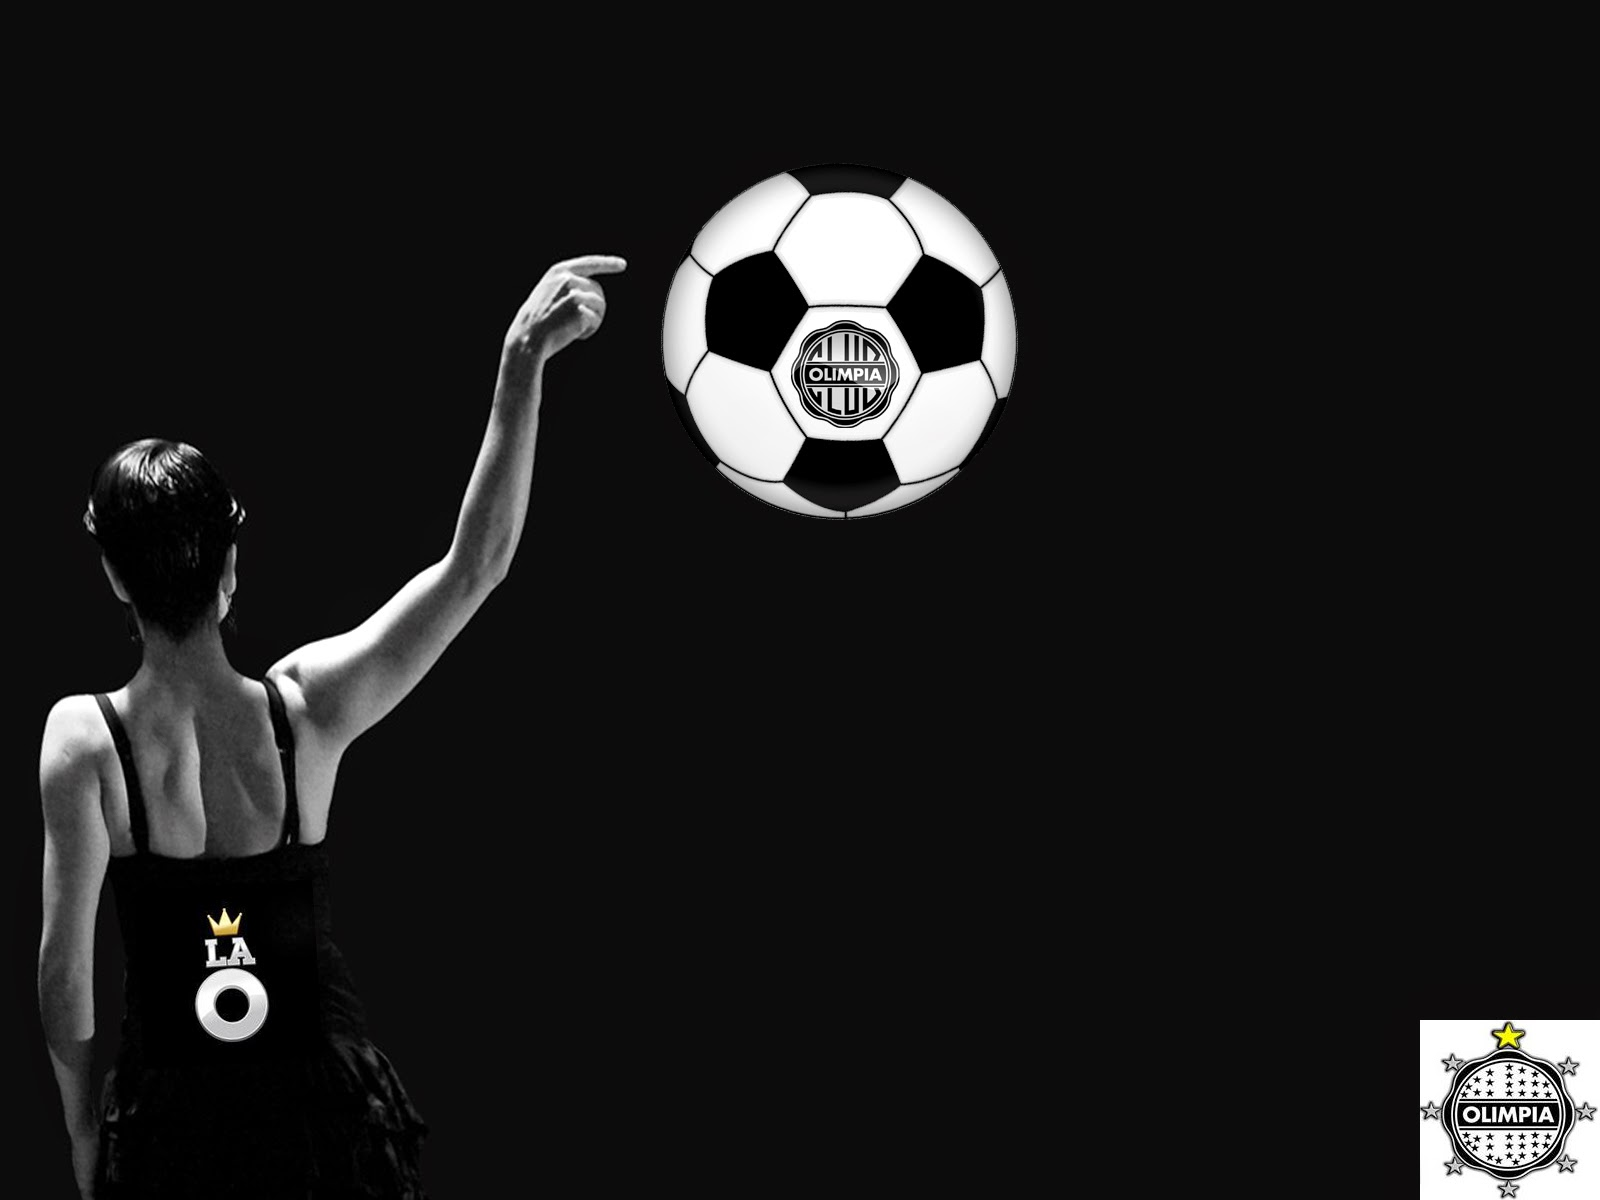 Blogolimpia Bo Mi Club Olimpia Wallpapers Para La Hinchada